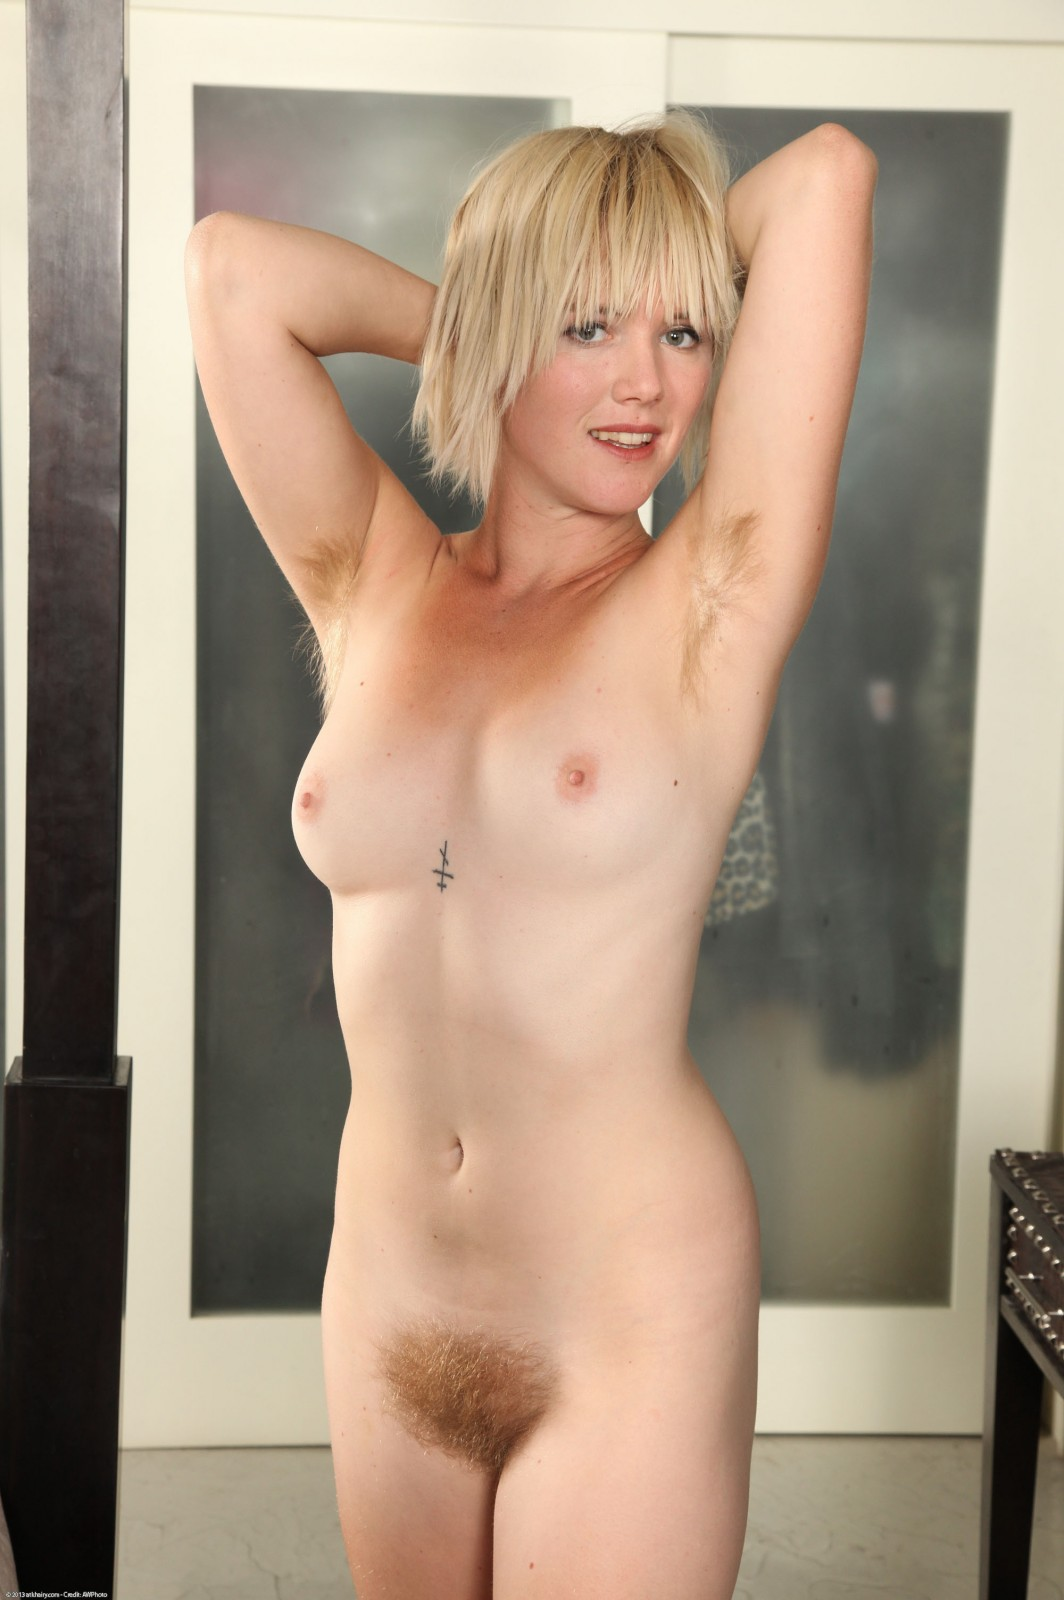 """ATK Hairy > Anna shows off her long pit hair and blonde furry bush and legs  > Models: Anna""""/></a></p> <h2>ATK Natural Hairy 9</h2> <p><iframe height=481 width=608 src="""